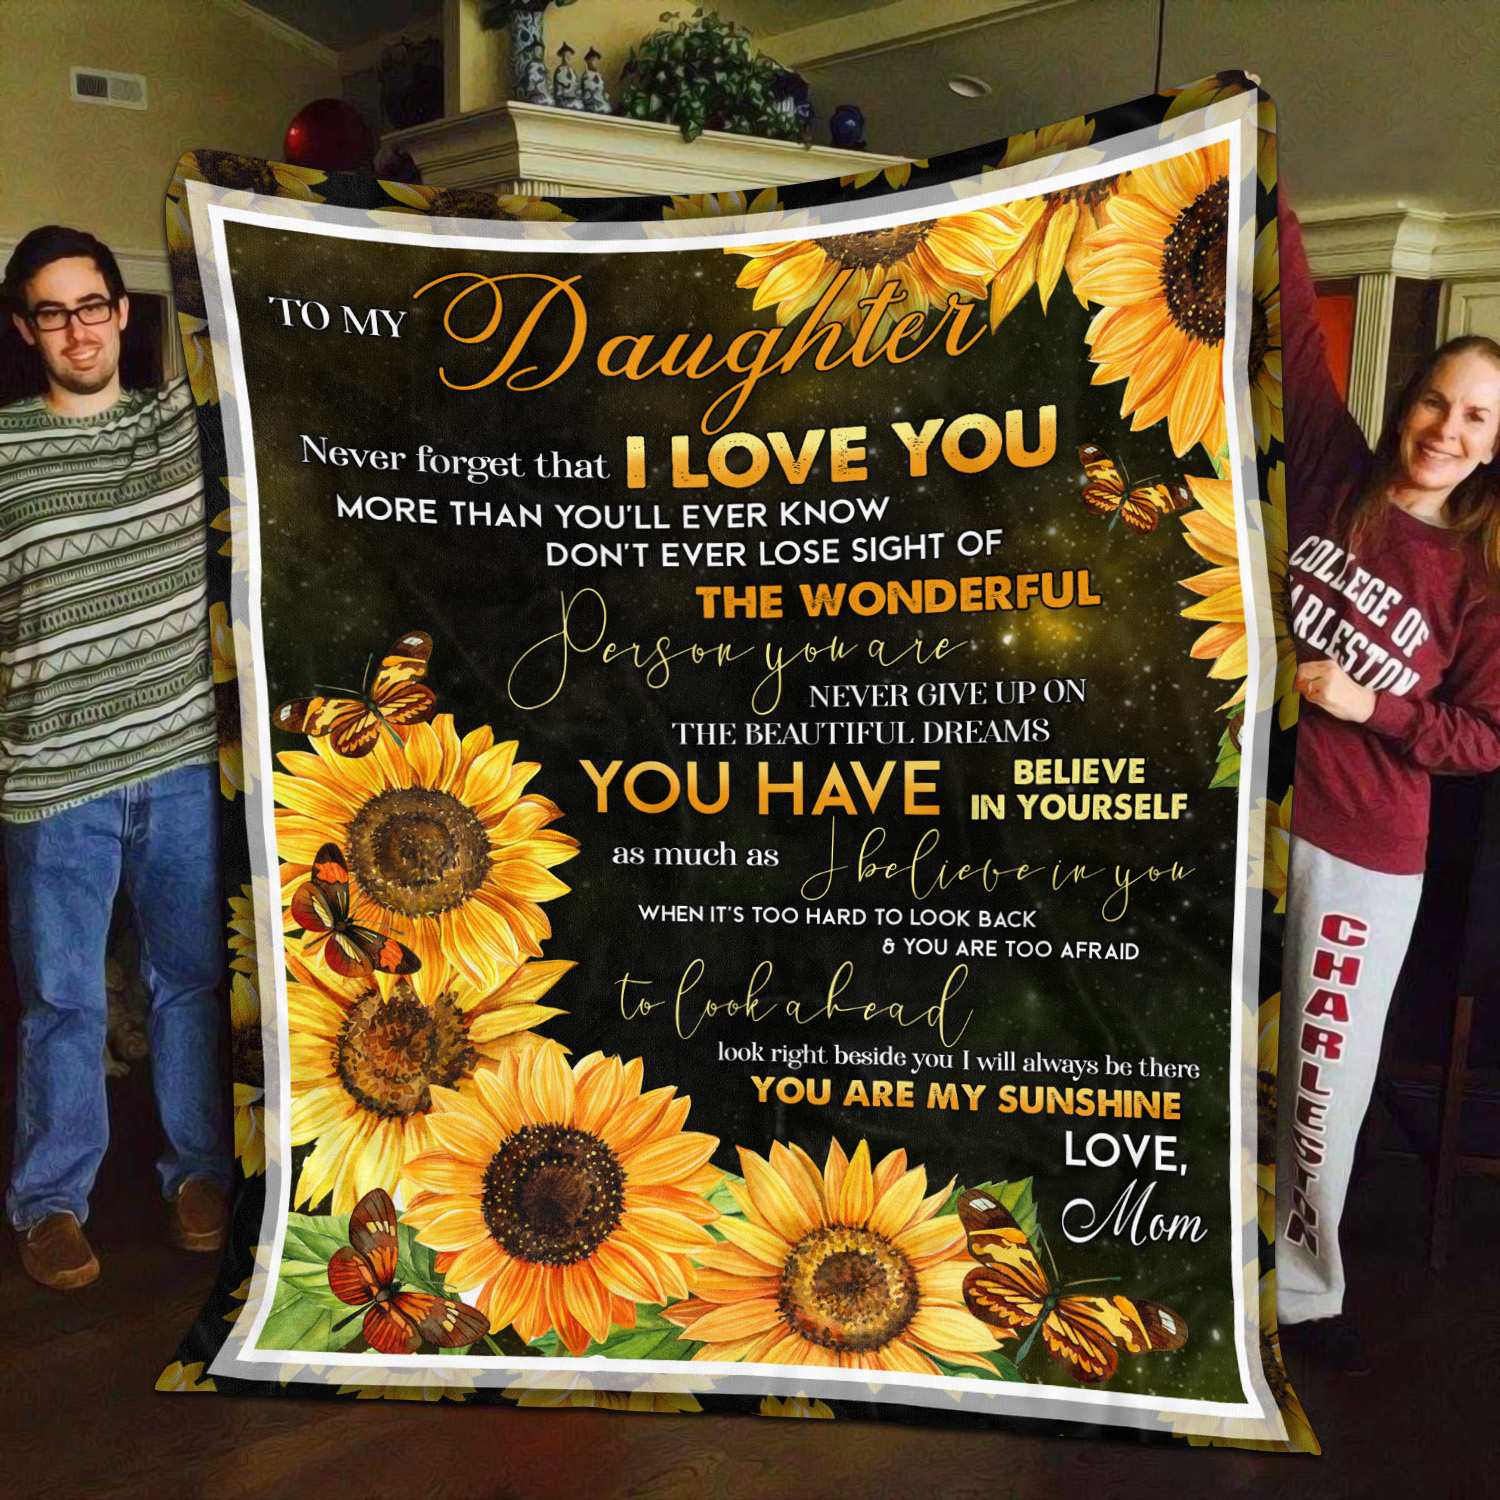 Sunflower to my daughter believe deeply you will never lose love mom blanket